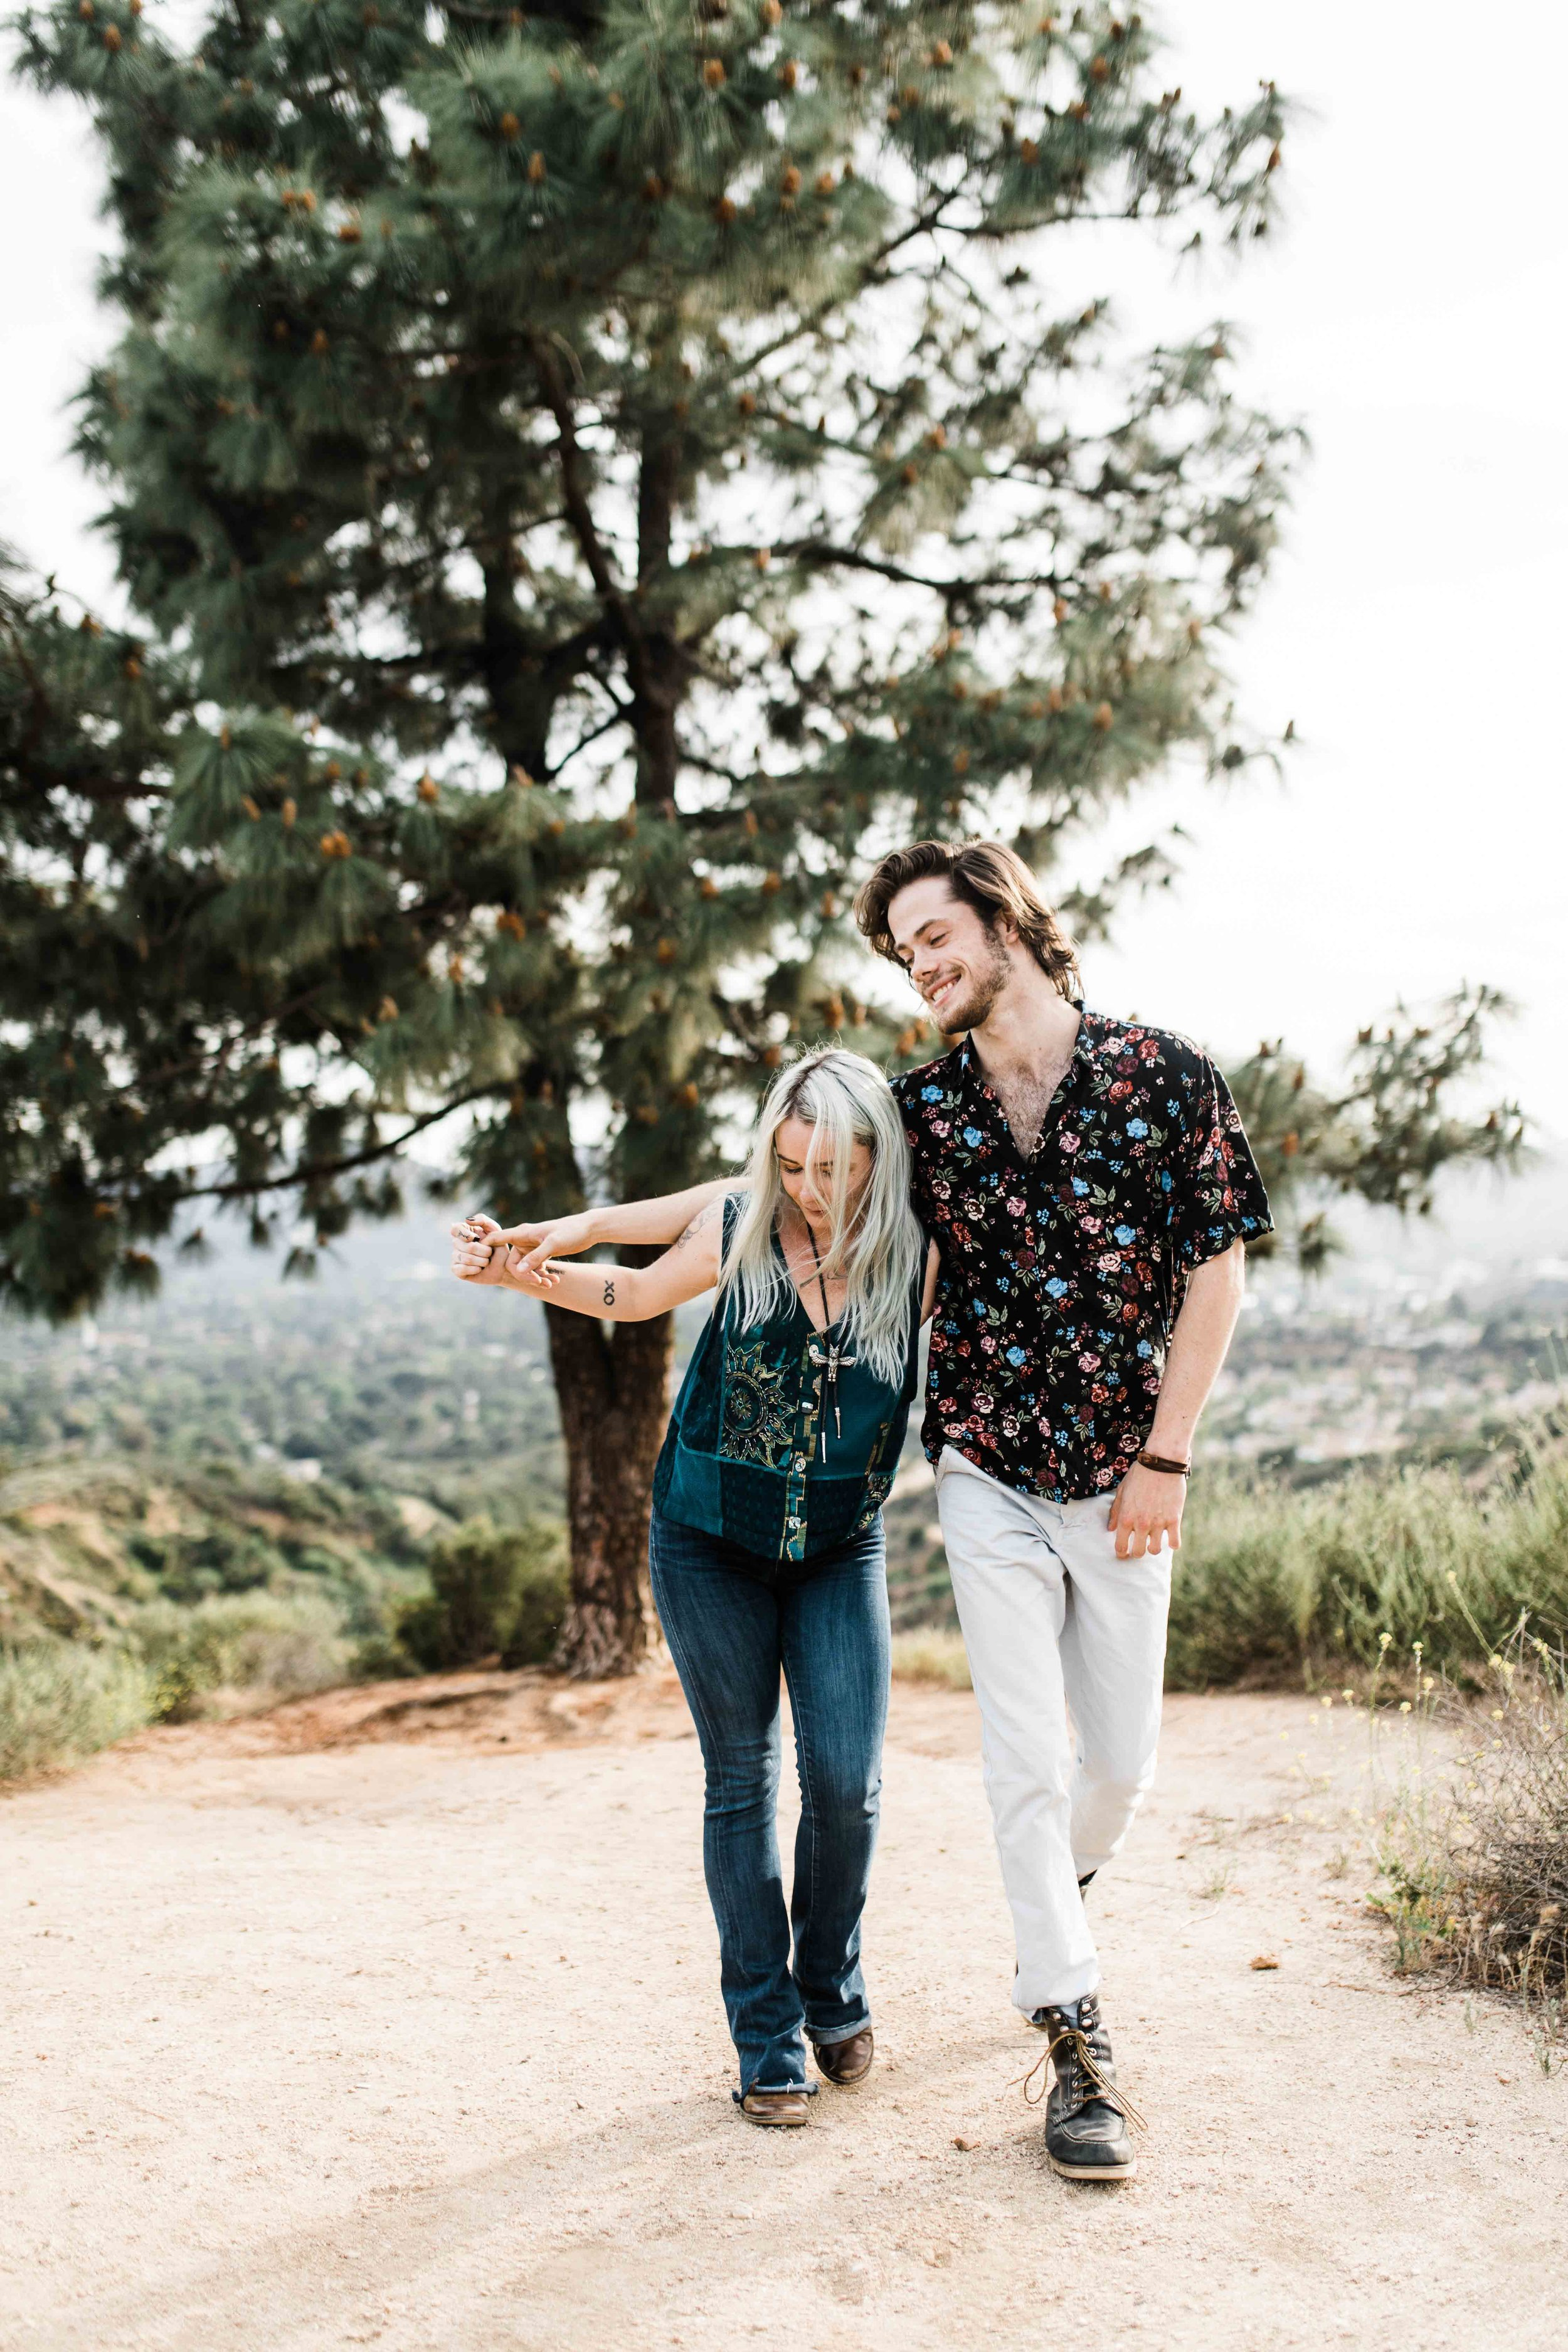 Tara&Will-Clarisse-Rae-Photo-&-Video-Southern-California-Wedding-Photographer-&-Videographer-Los-Angeles-Engagement-Session_3